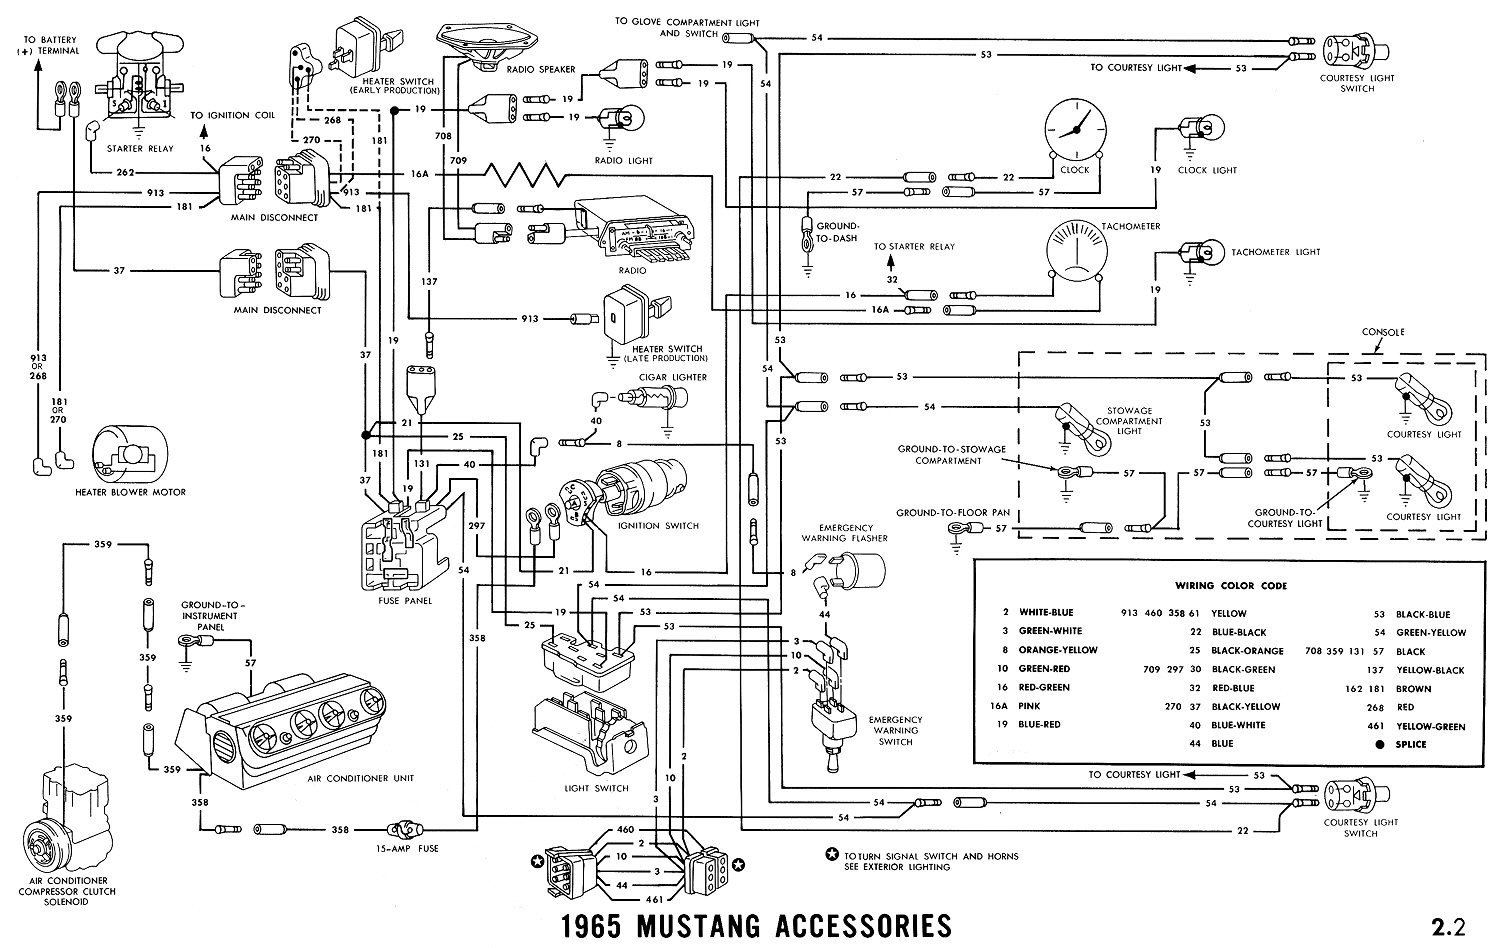 1965i 1965 mustang wiring diagrams average joe restoration 1965 mustang heater wiring diagram at cos-gaming.co